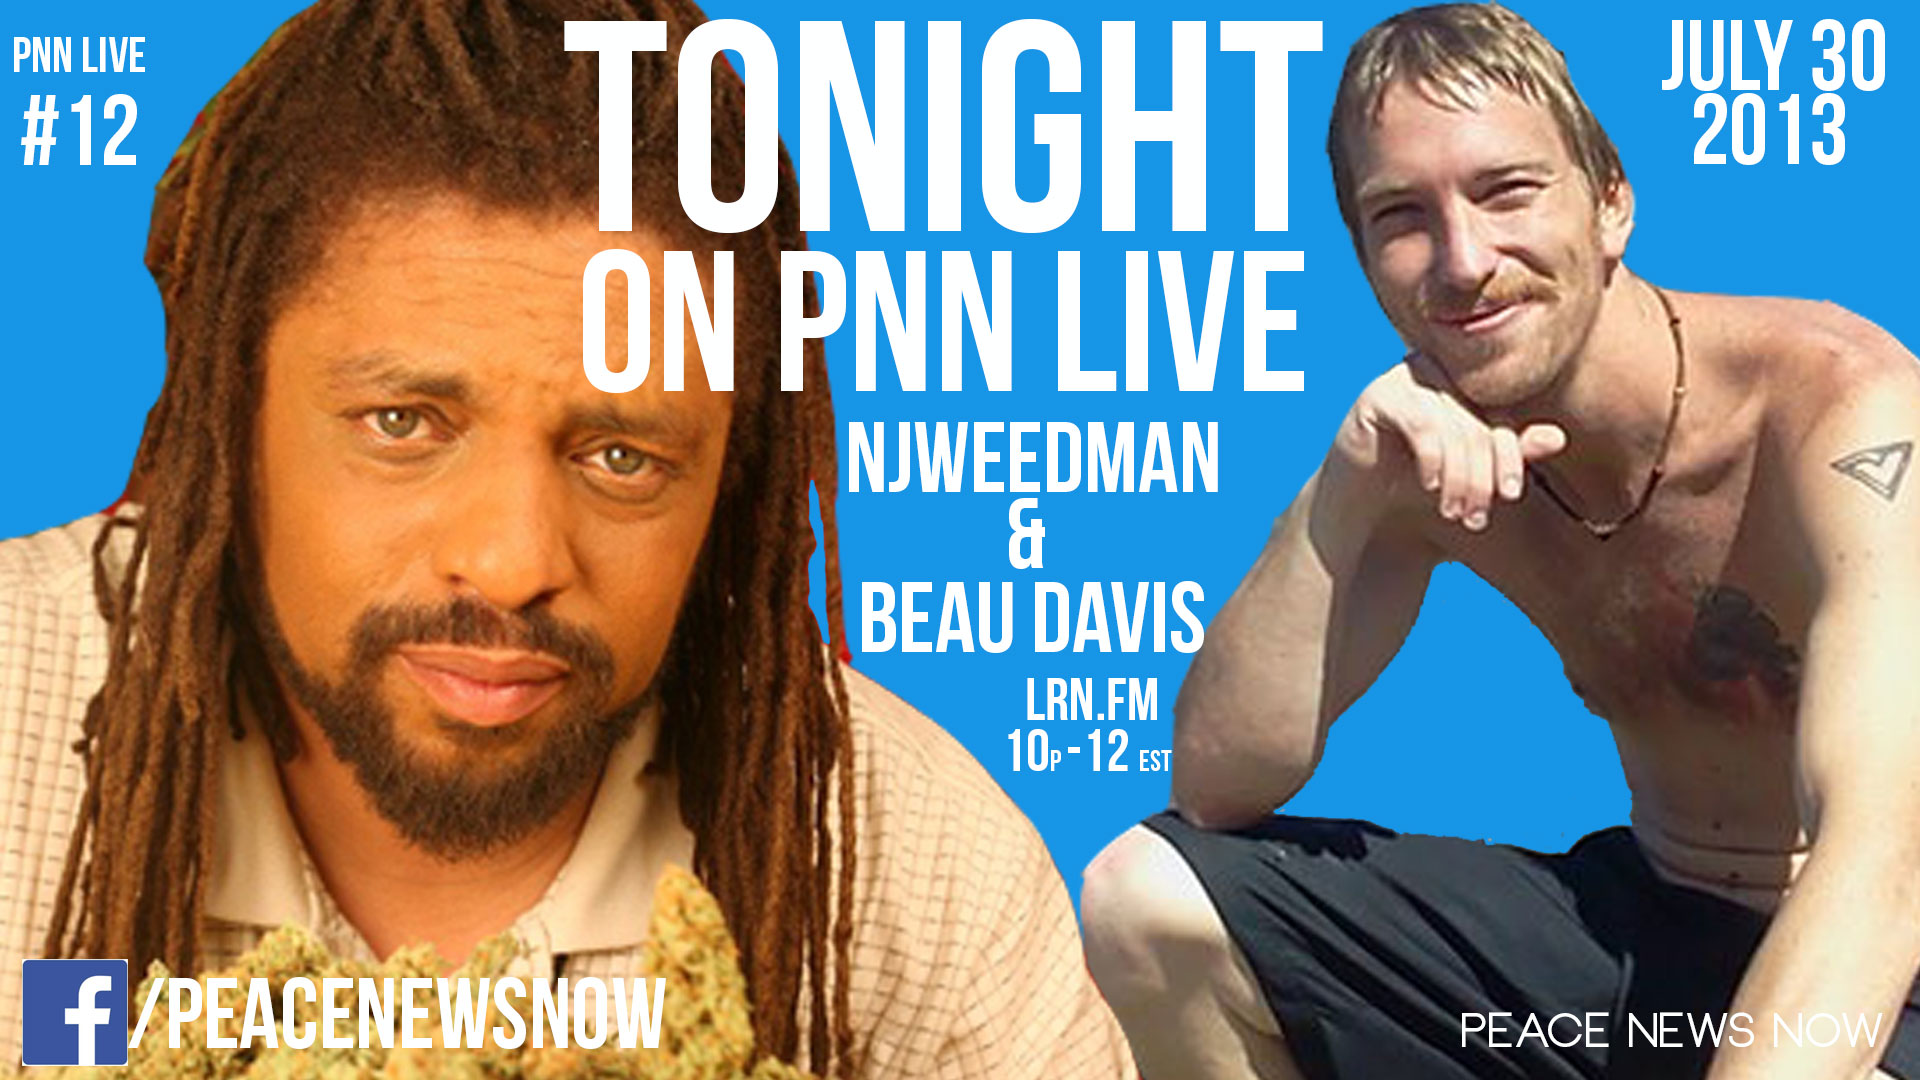 PNN Live #12 – Whistleblowers, Jury Nullification, BEARCATS